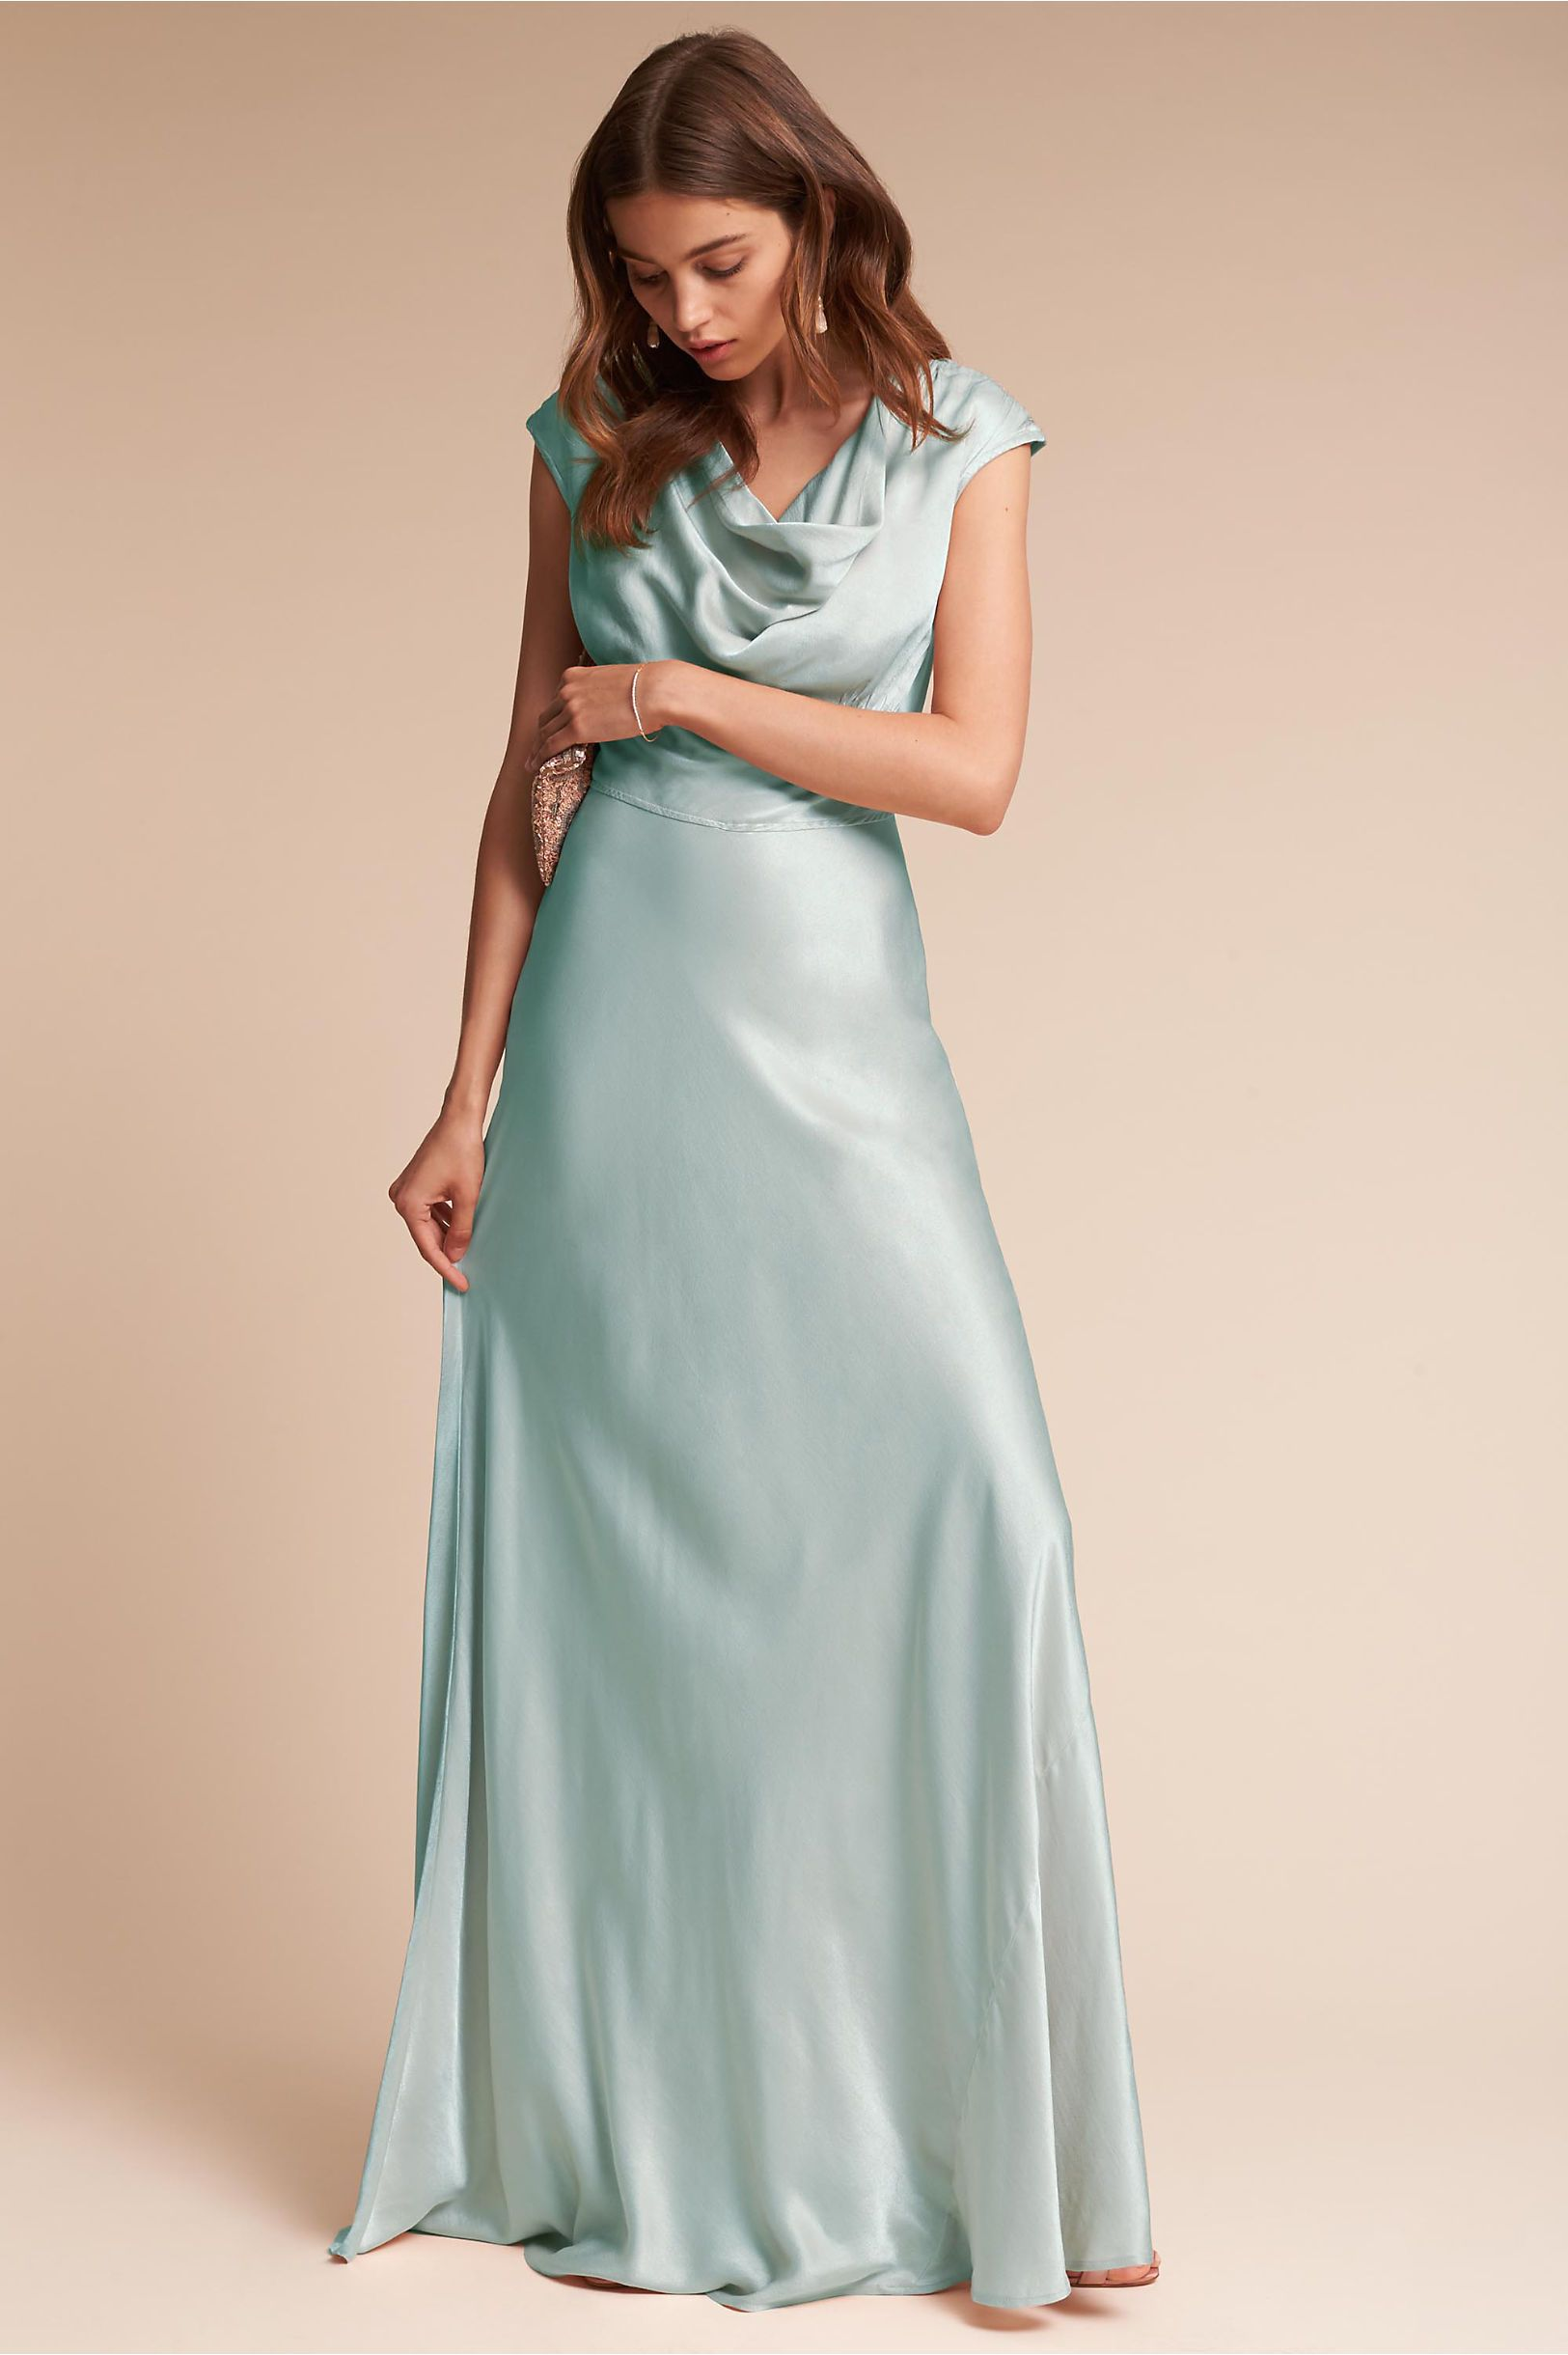 Wonderful bridesmaid dress shops london ideas wedding ideas bhldns ghost london gloss dress in ivory products ombrellifo Image collections